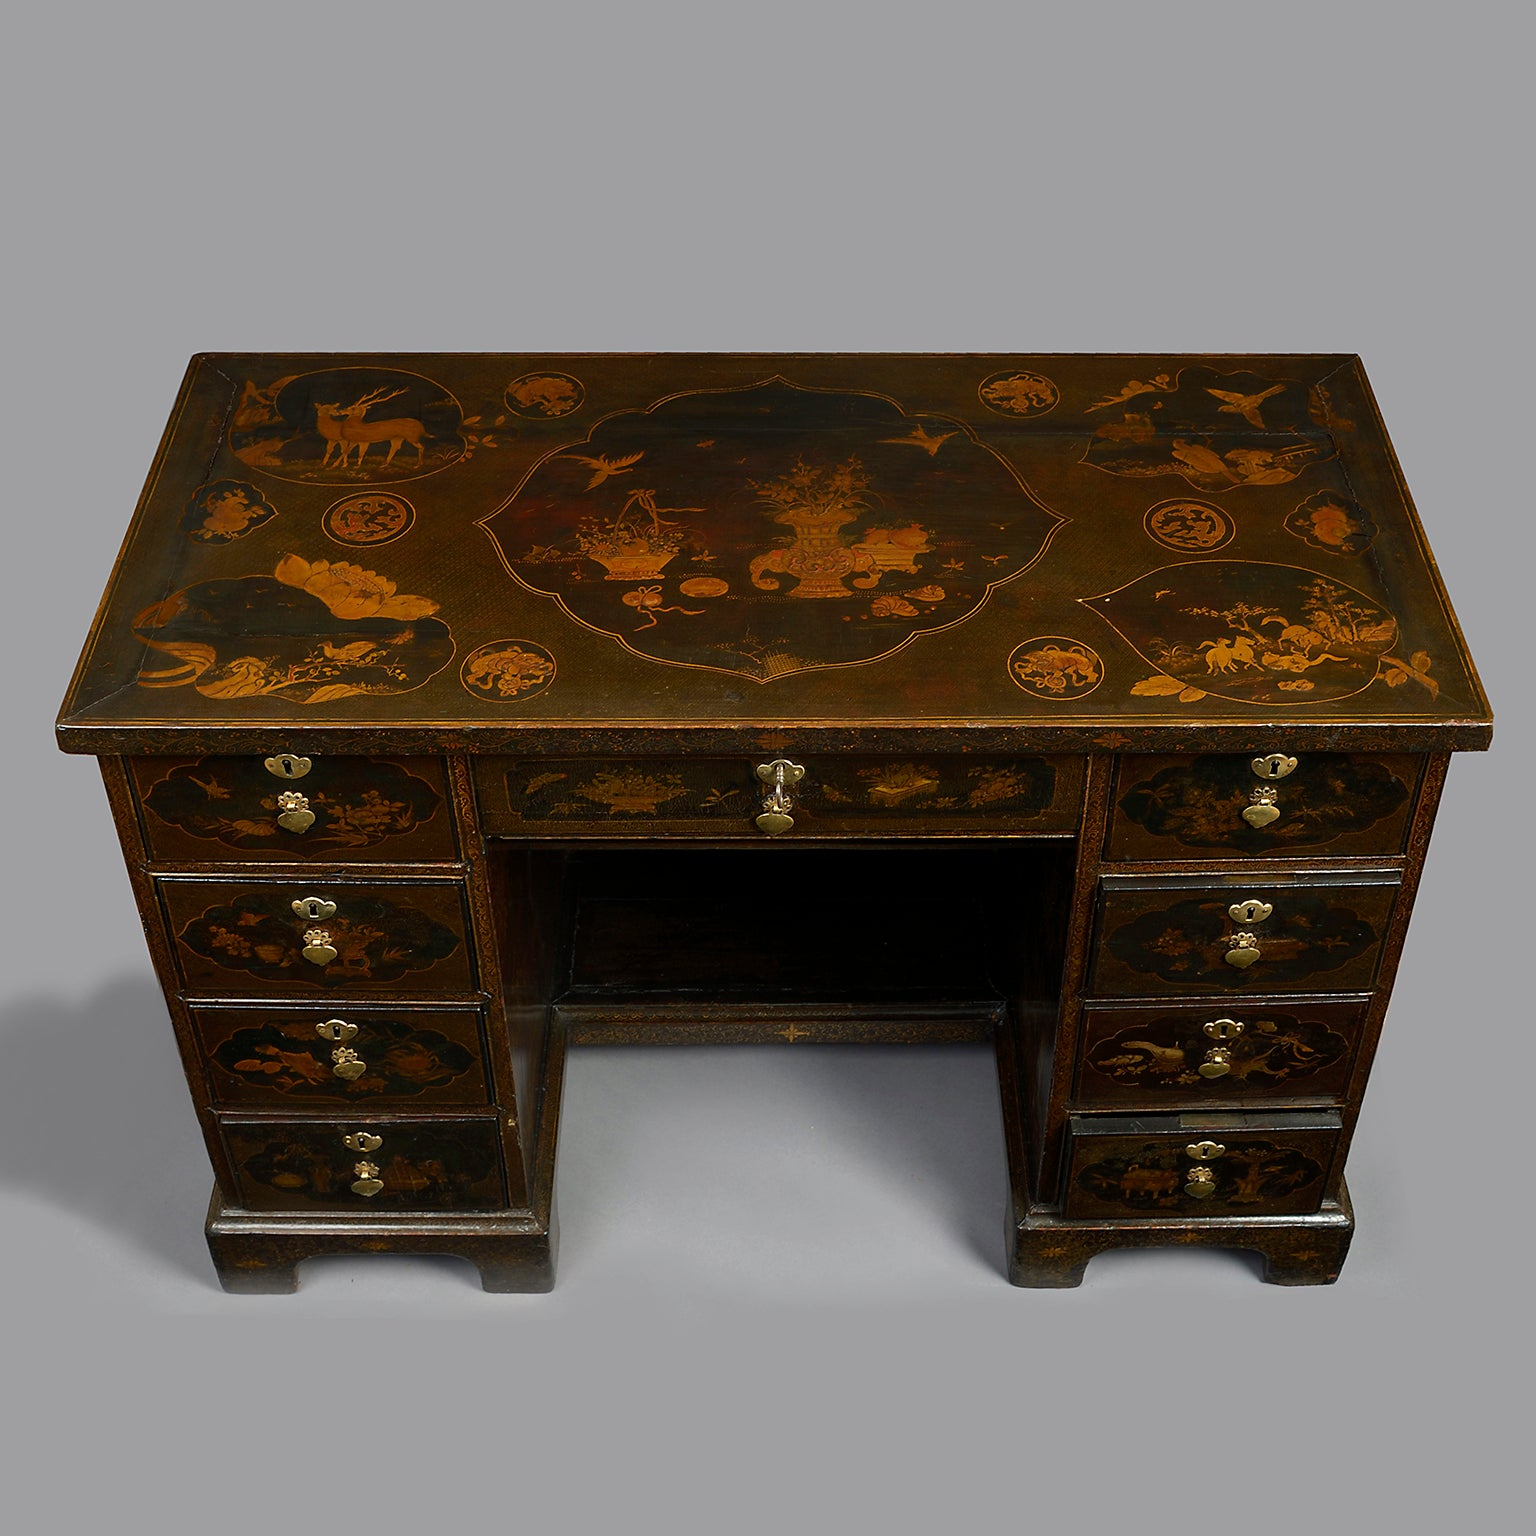 Chinese Export Lacquer Kneehole Desk or Dressing Table